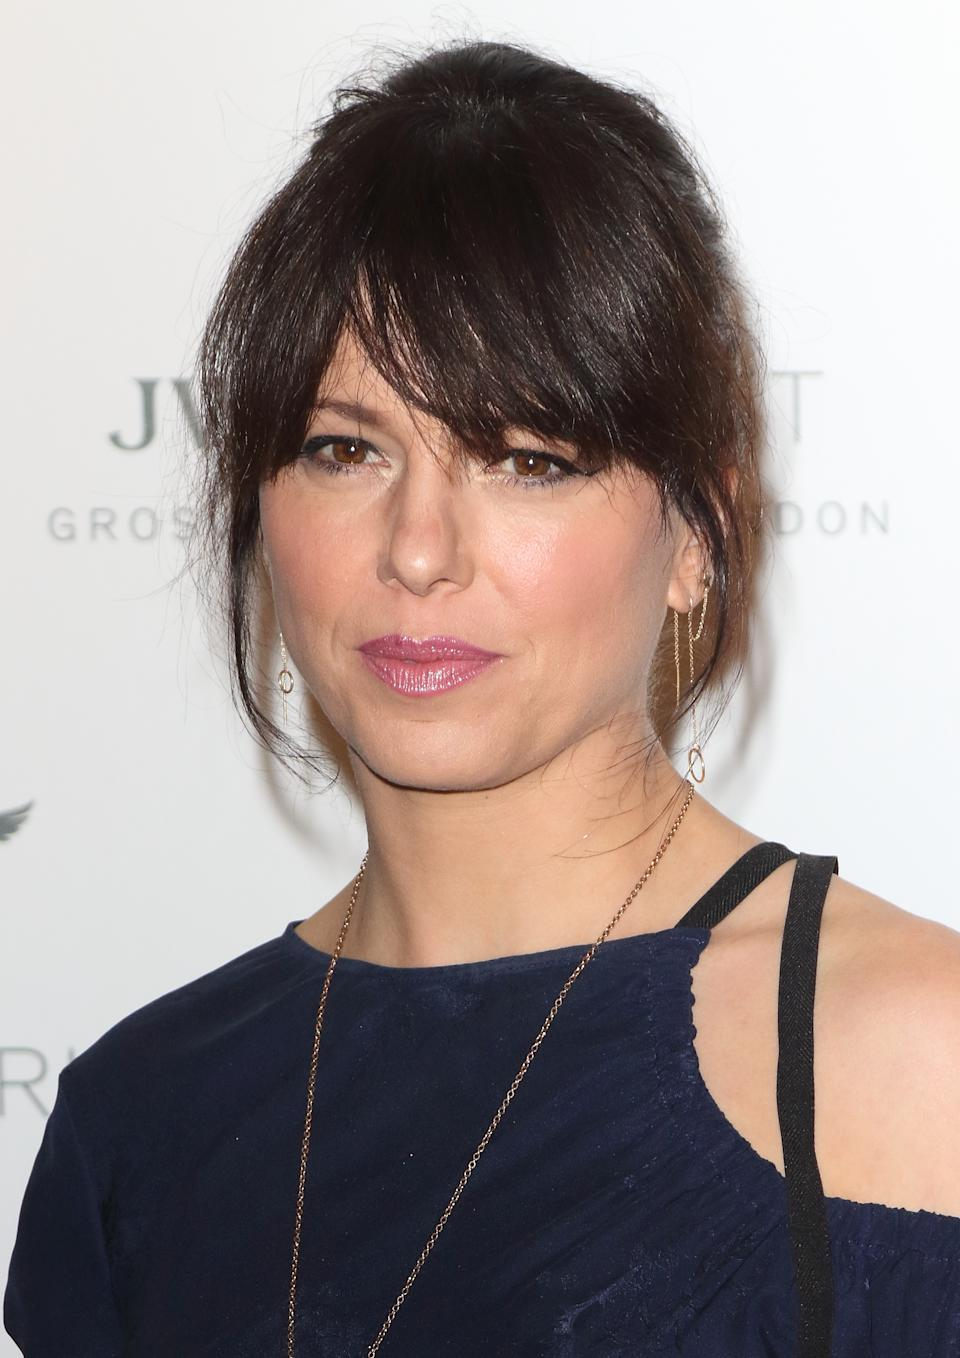 LONDON, UNITED KINGDOM - 2019/04/30: Imelda May at the JW Marriott Grosvenor House - 90th anniversary party at the JW Marriott Grosvenor House, Park Lane. (Photo by Keith Mayhew/SOPA Images/LightRocket via Getty Images)